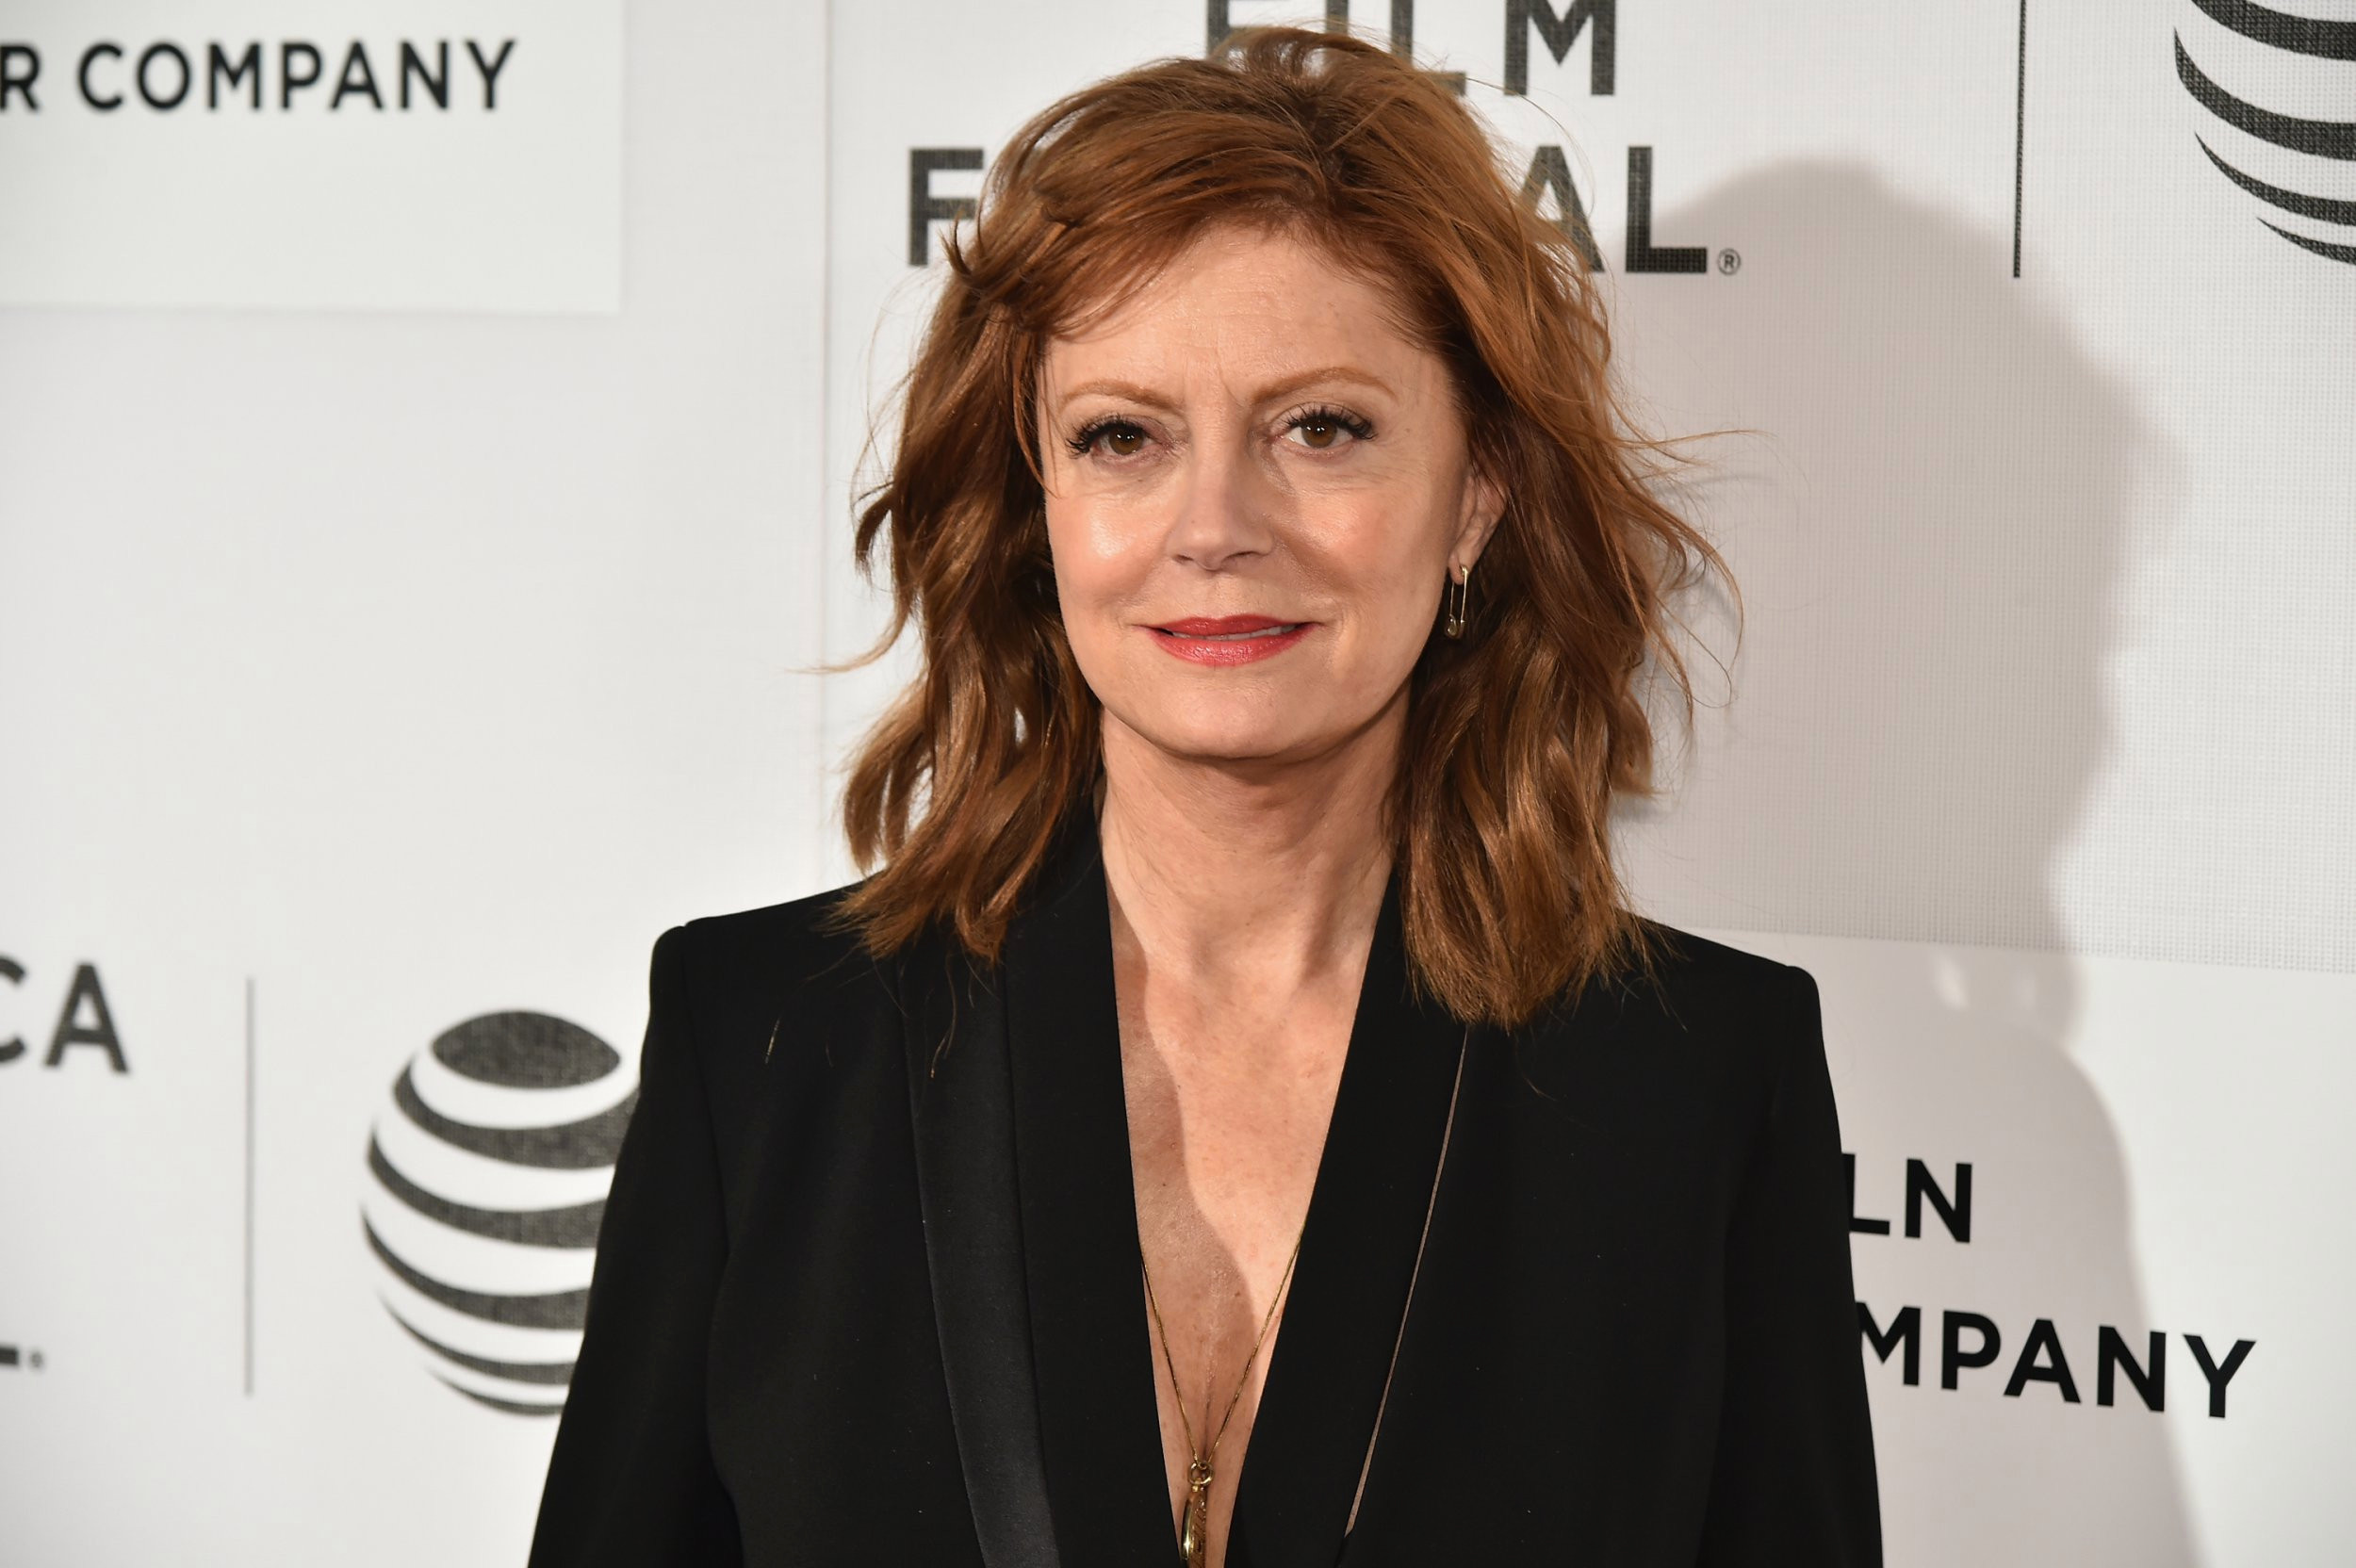 Susan Sarandon reveals why she likes to date younger men rather than those who are 'appropriate'